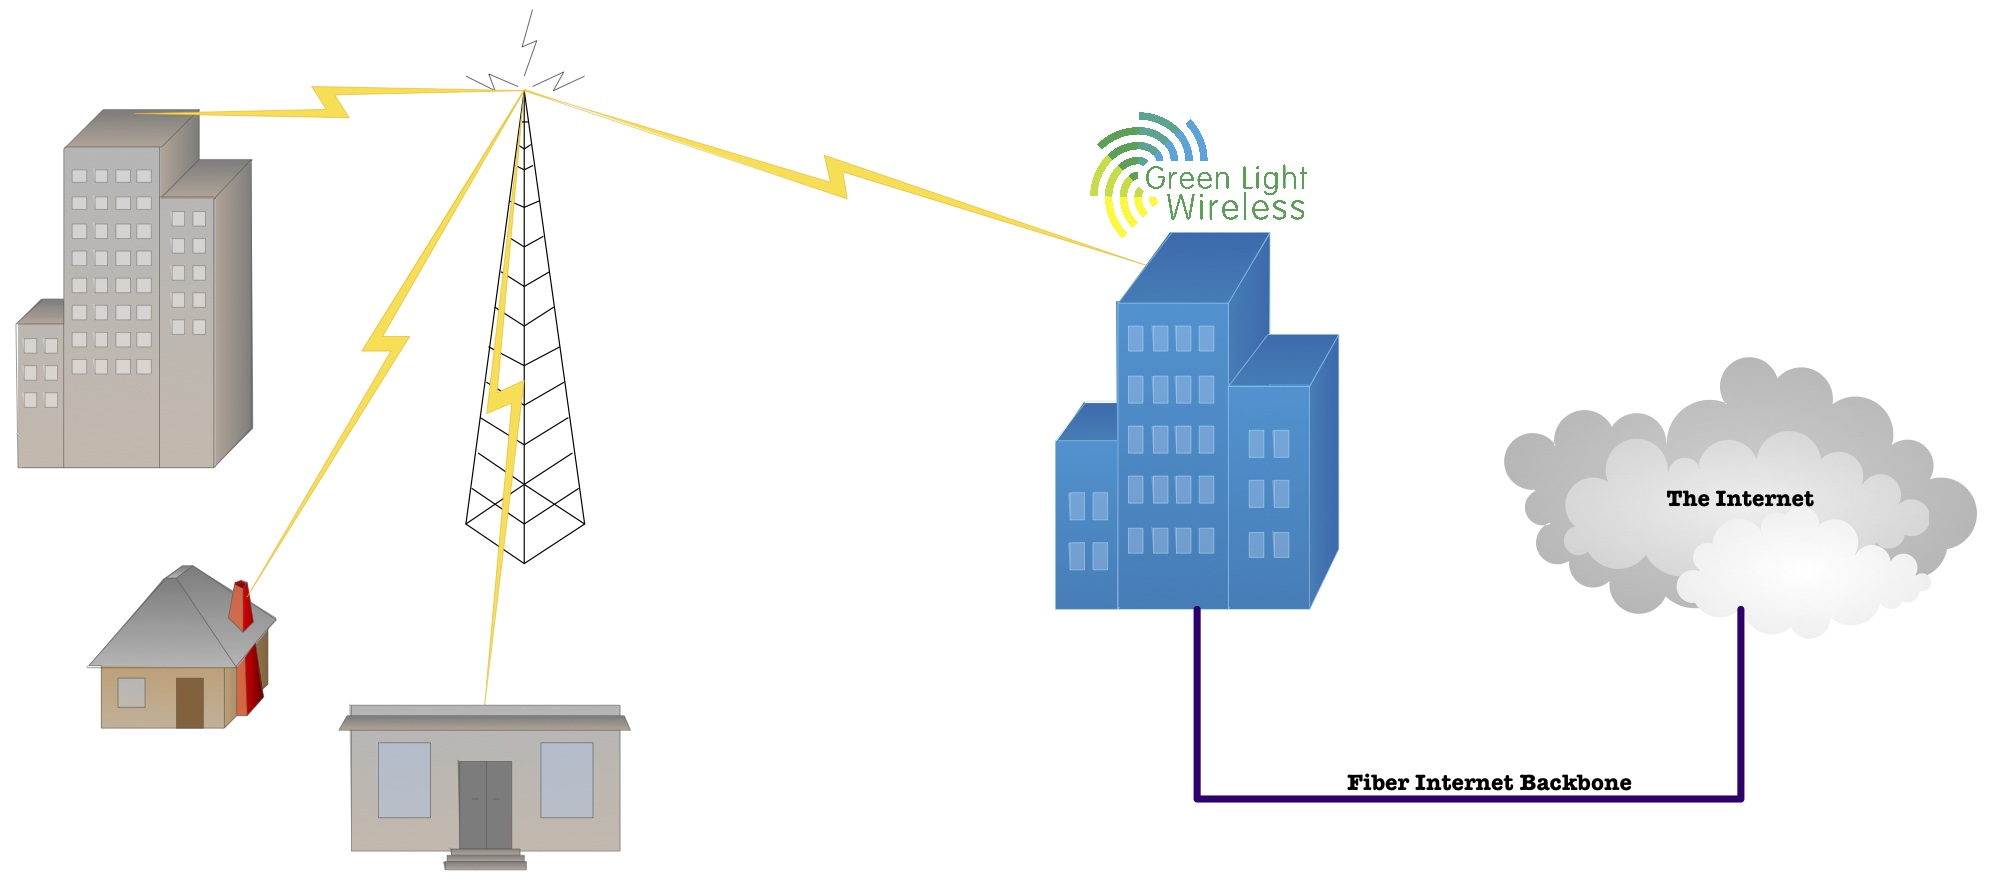 From there, our network remains entirely fiber until the signal reaches a  Green Light Wireless receiver located on radio towers all over the city.